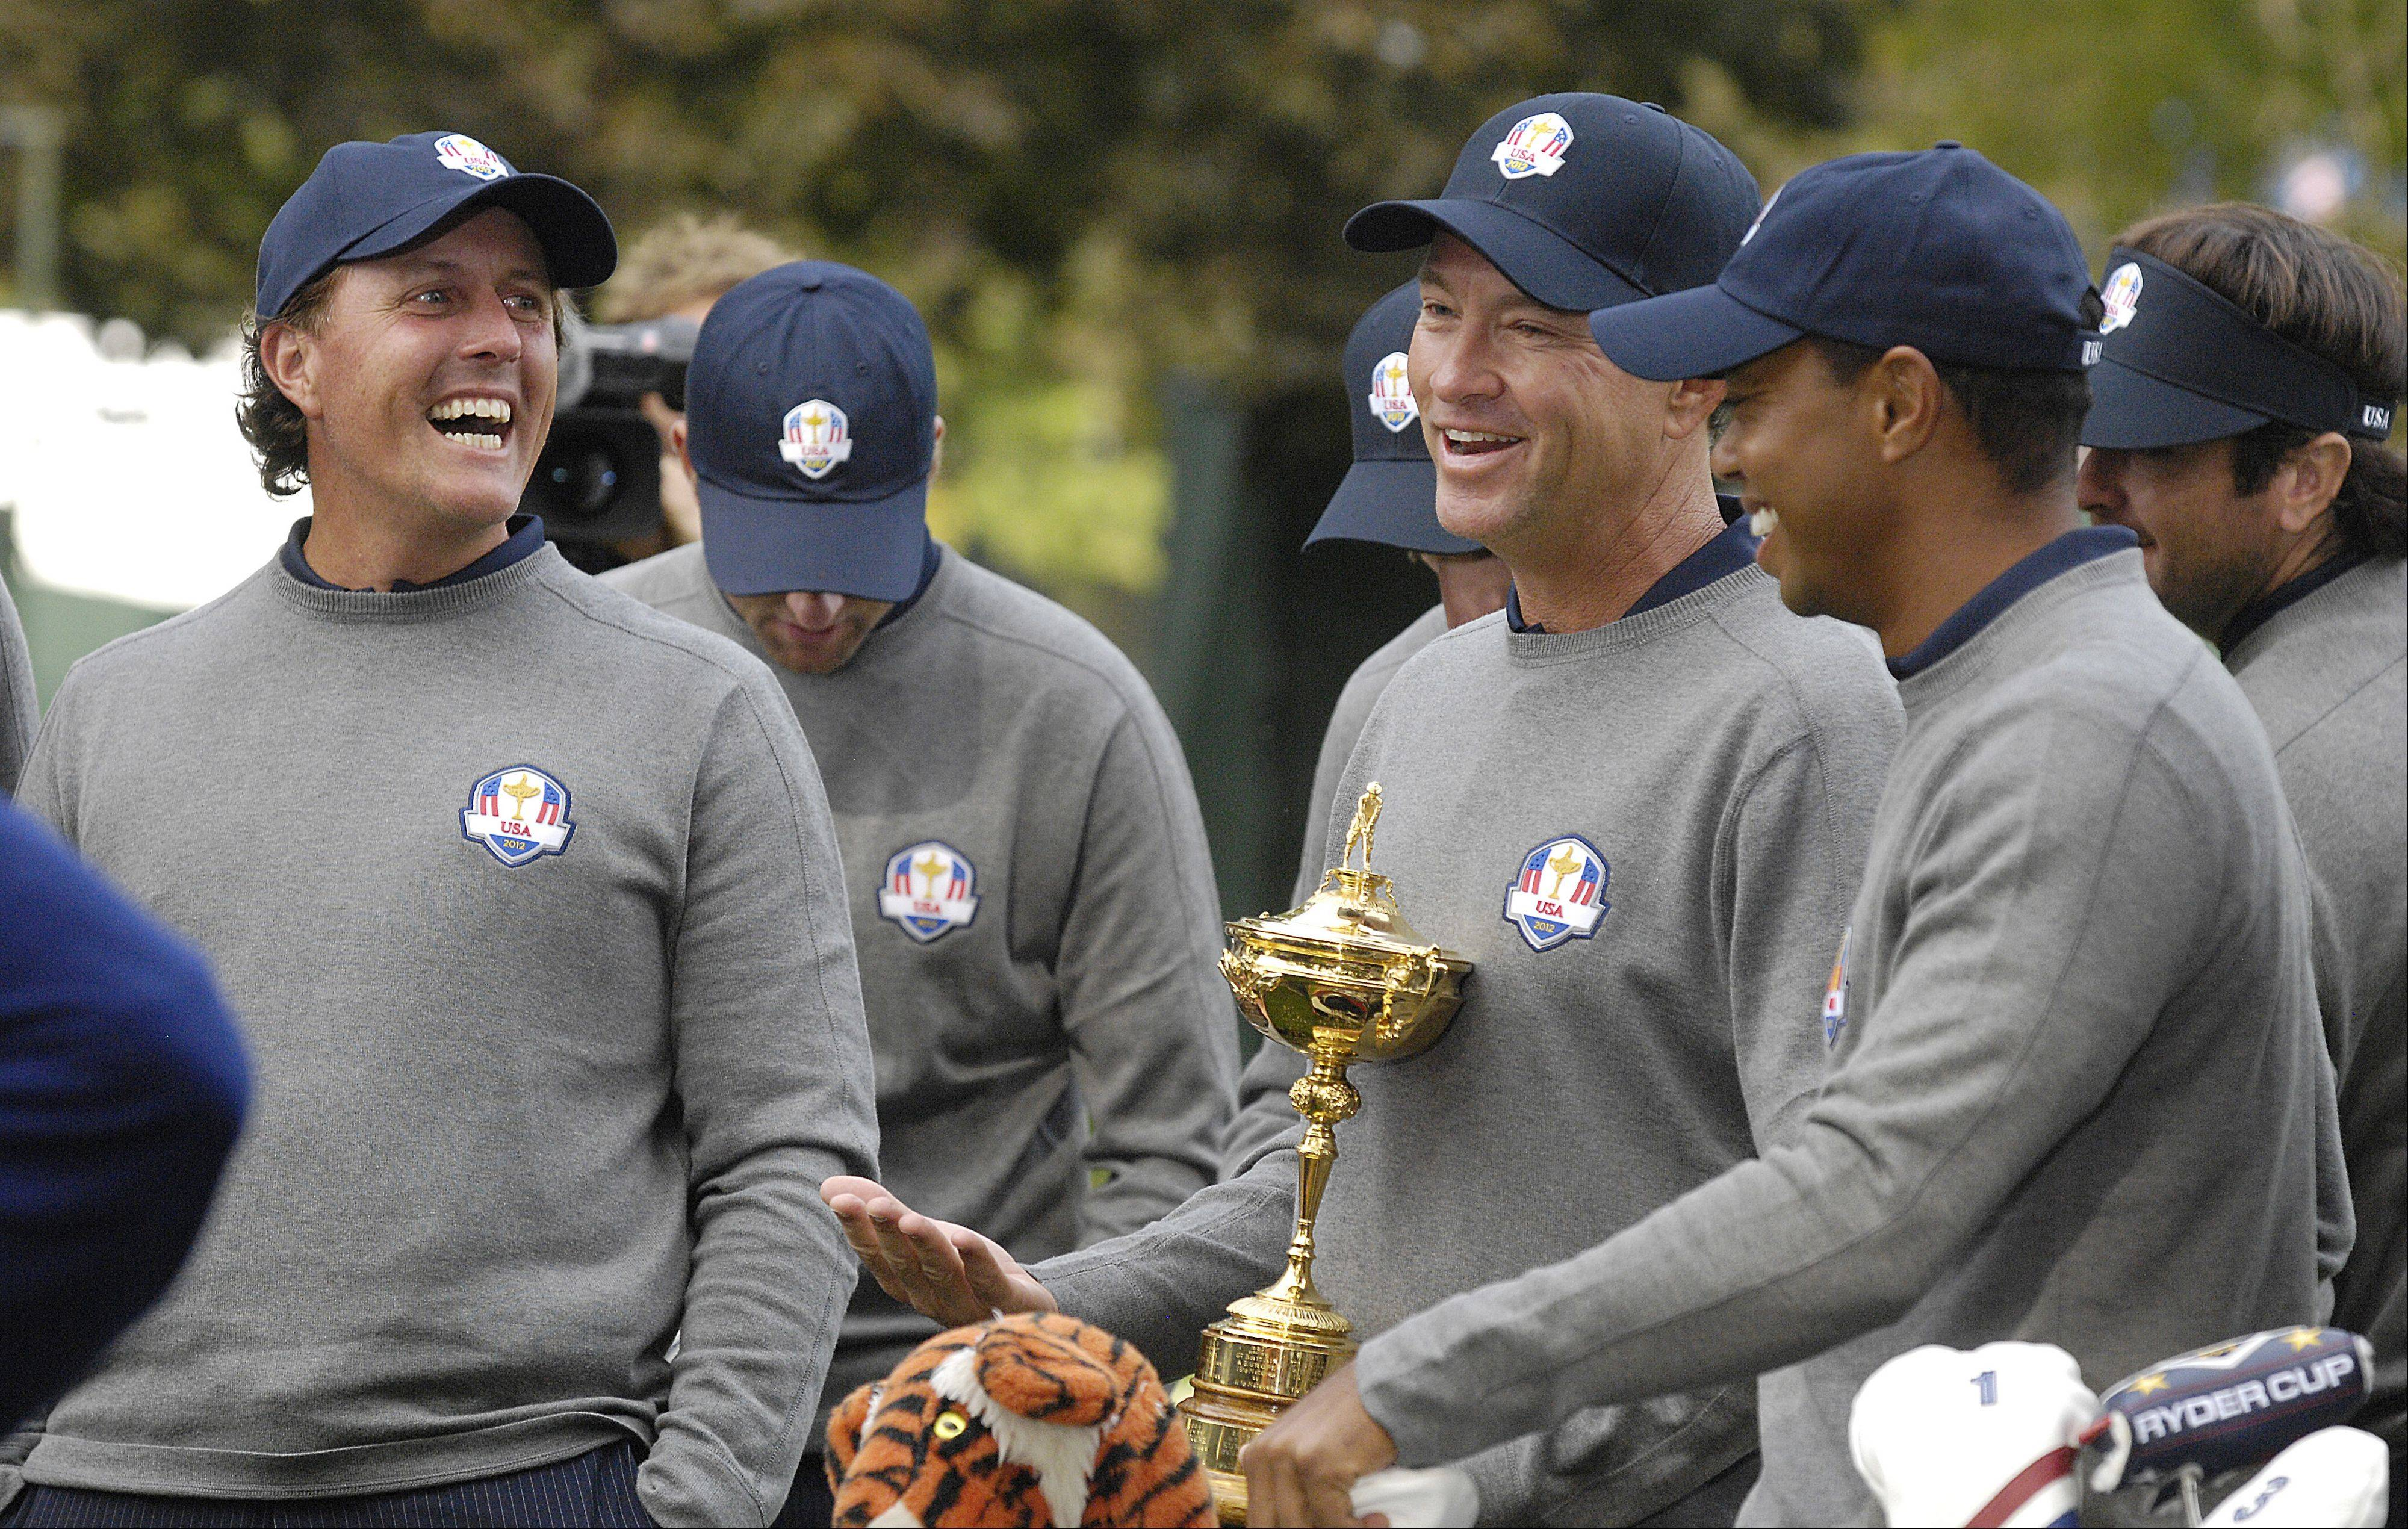 Team camaraderie is important in Ryder Cup competitions, and Phil Mickelson, U.S. captain Davis Love III and Tiger Woods shared a fun moment during team pictures Tuesday at Medinah. Players on both sides are expecting spirited U.S. fans this weekend.